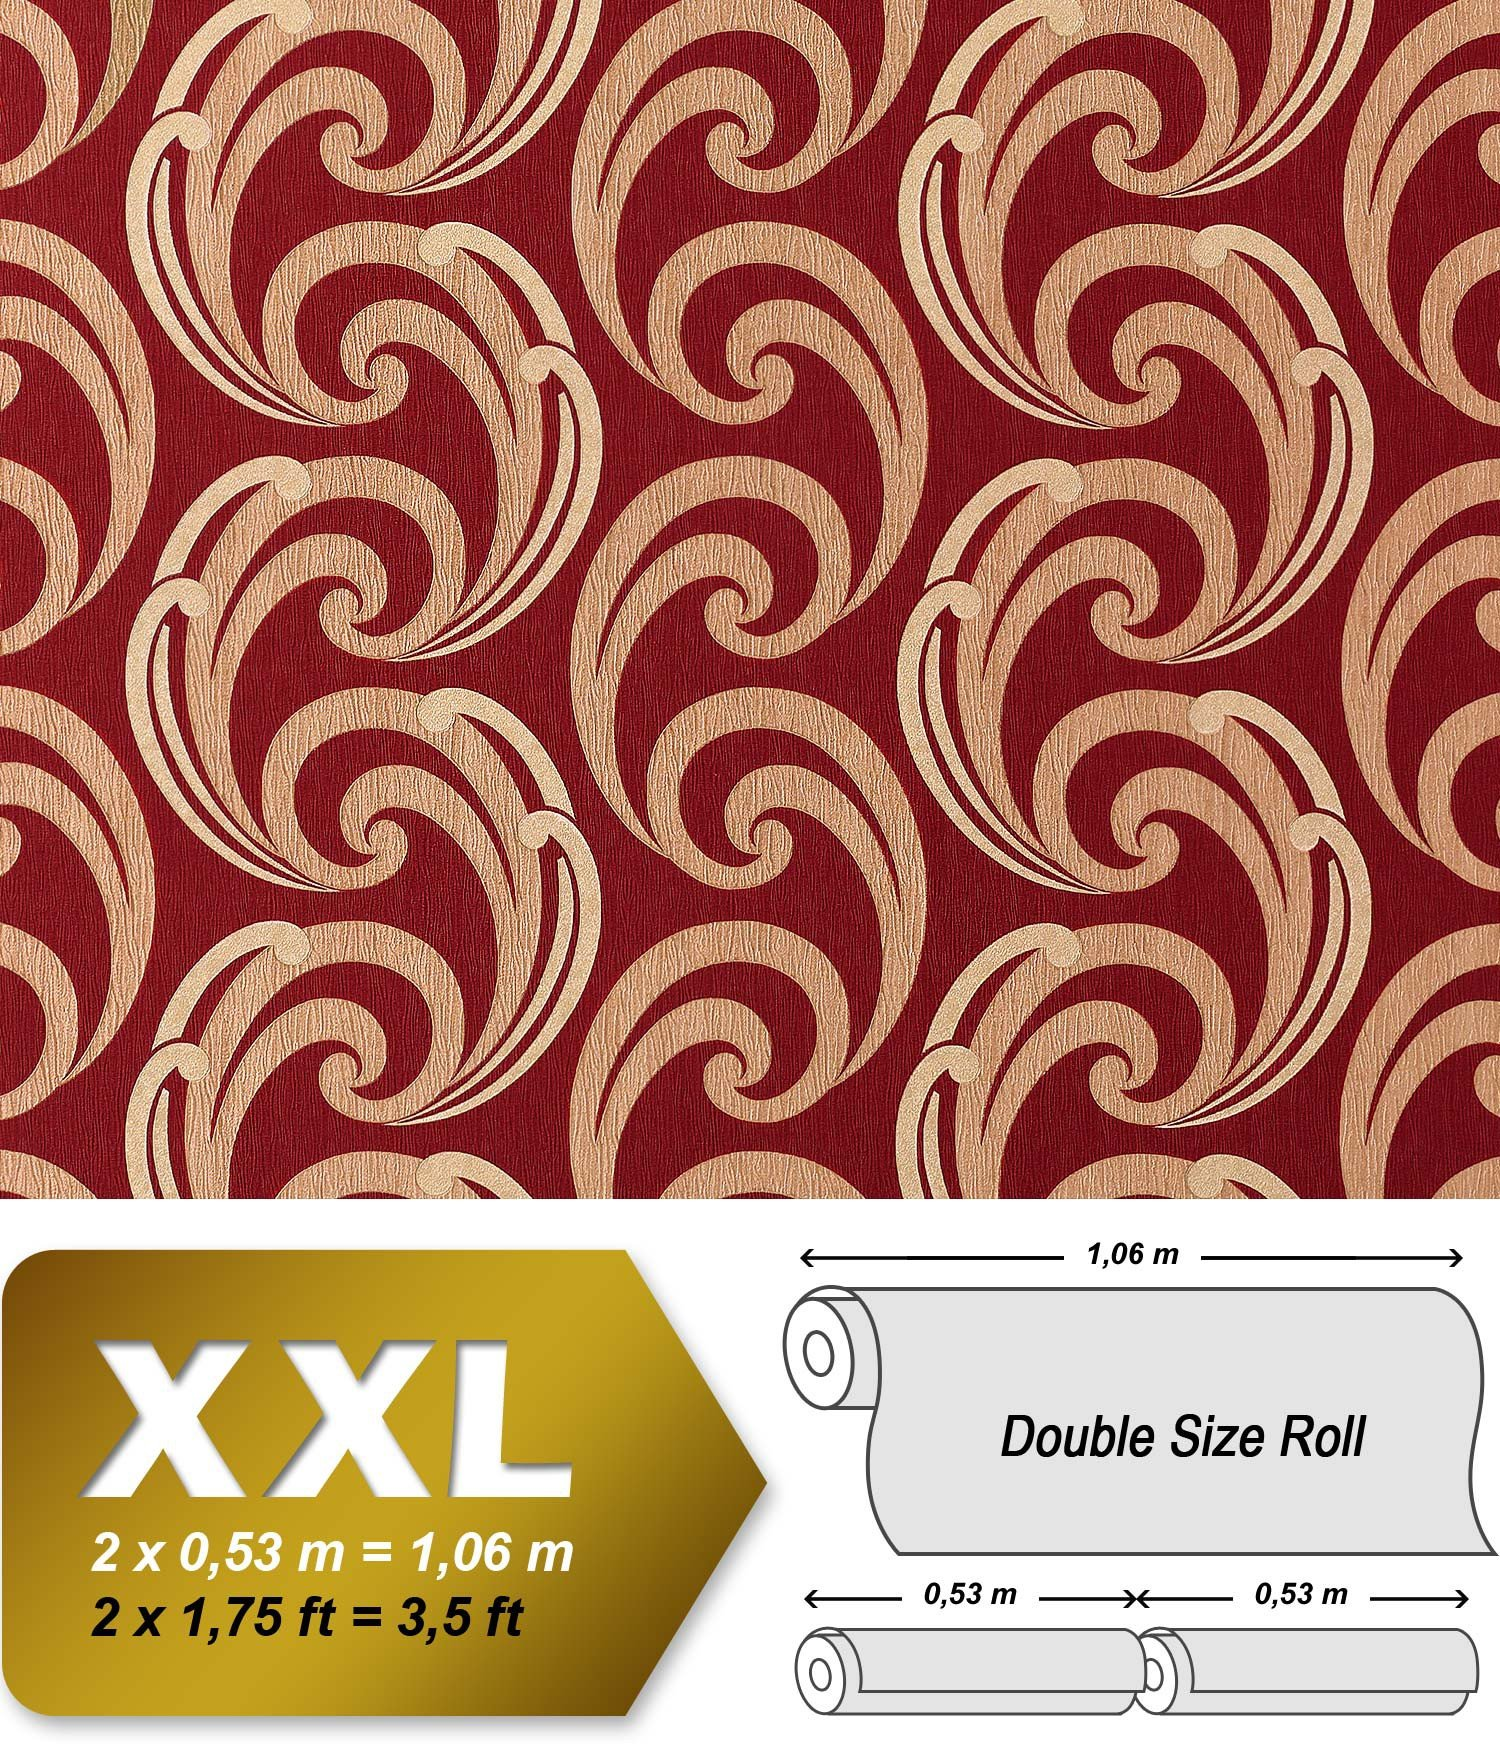 Wallpaper wall luxury textured curved lines EDEM 915-35 XXL non-woven embossed pattern red bronze gold 10,65 sqm (114 sq ft)